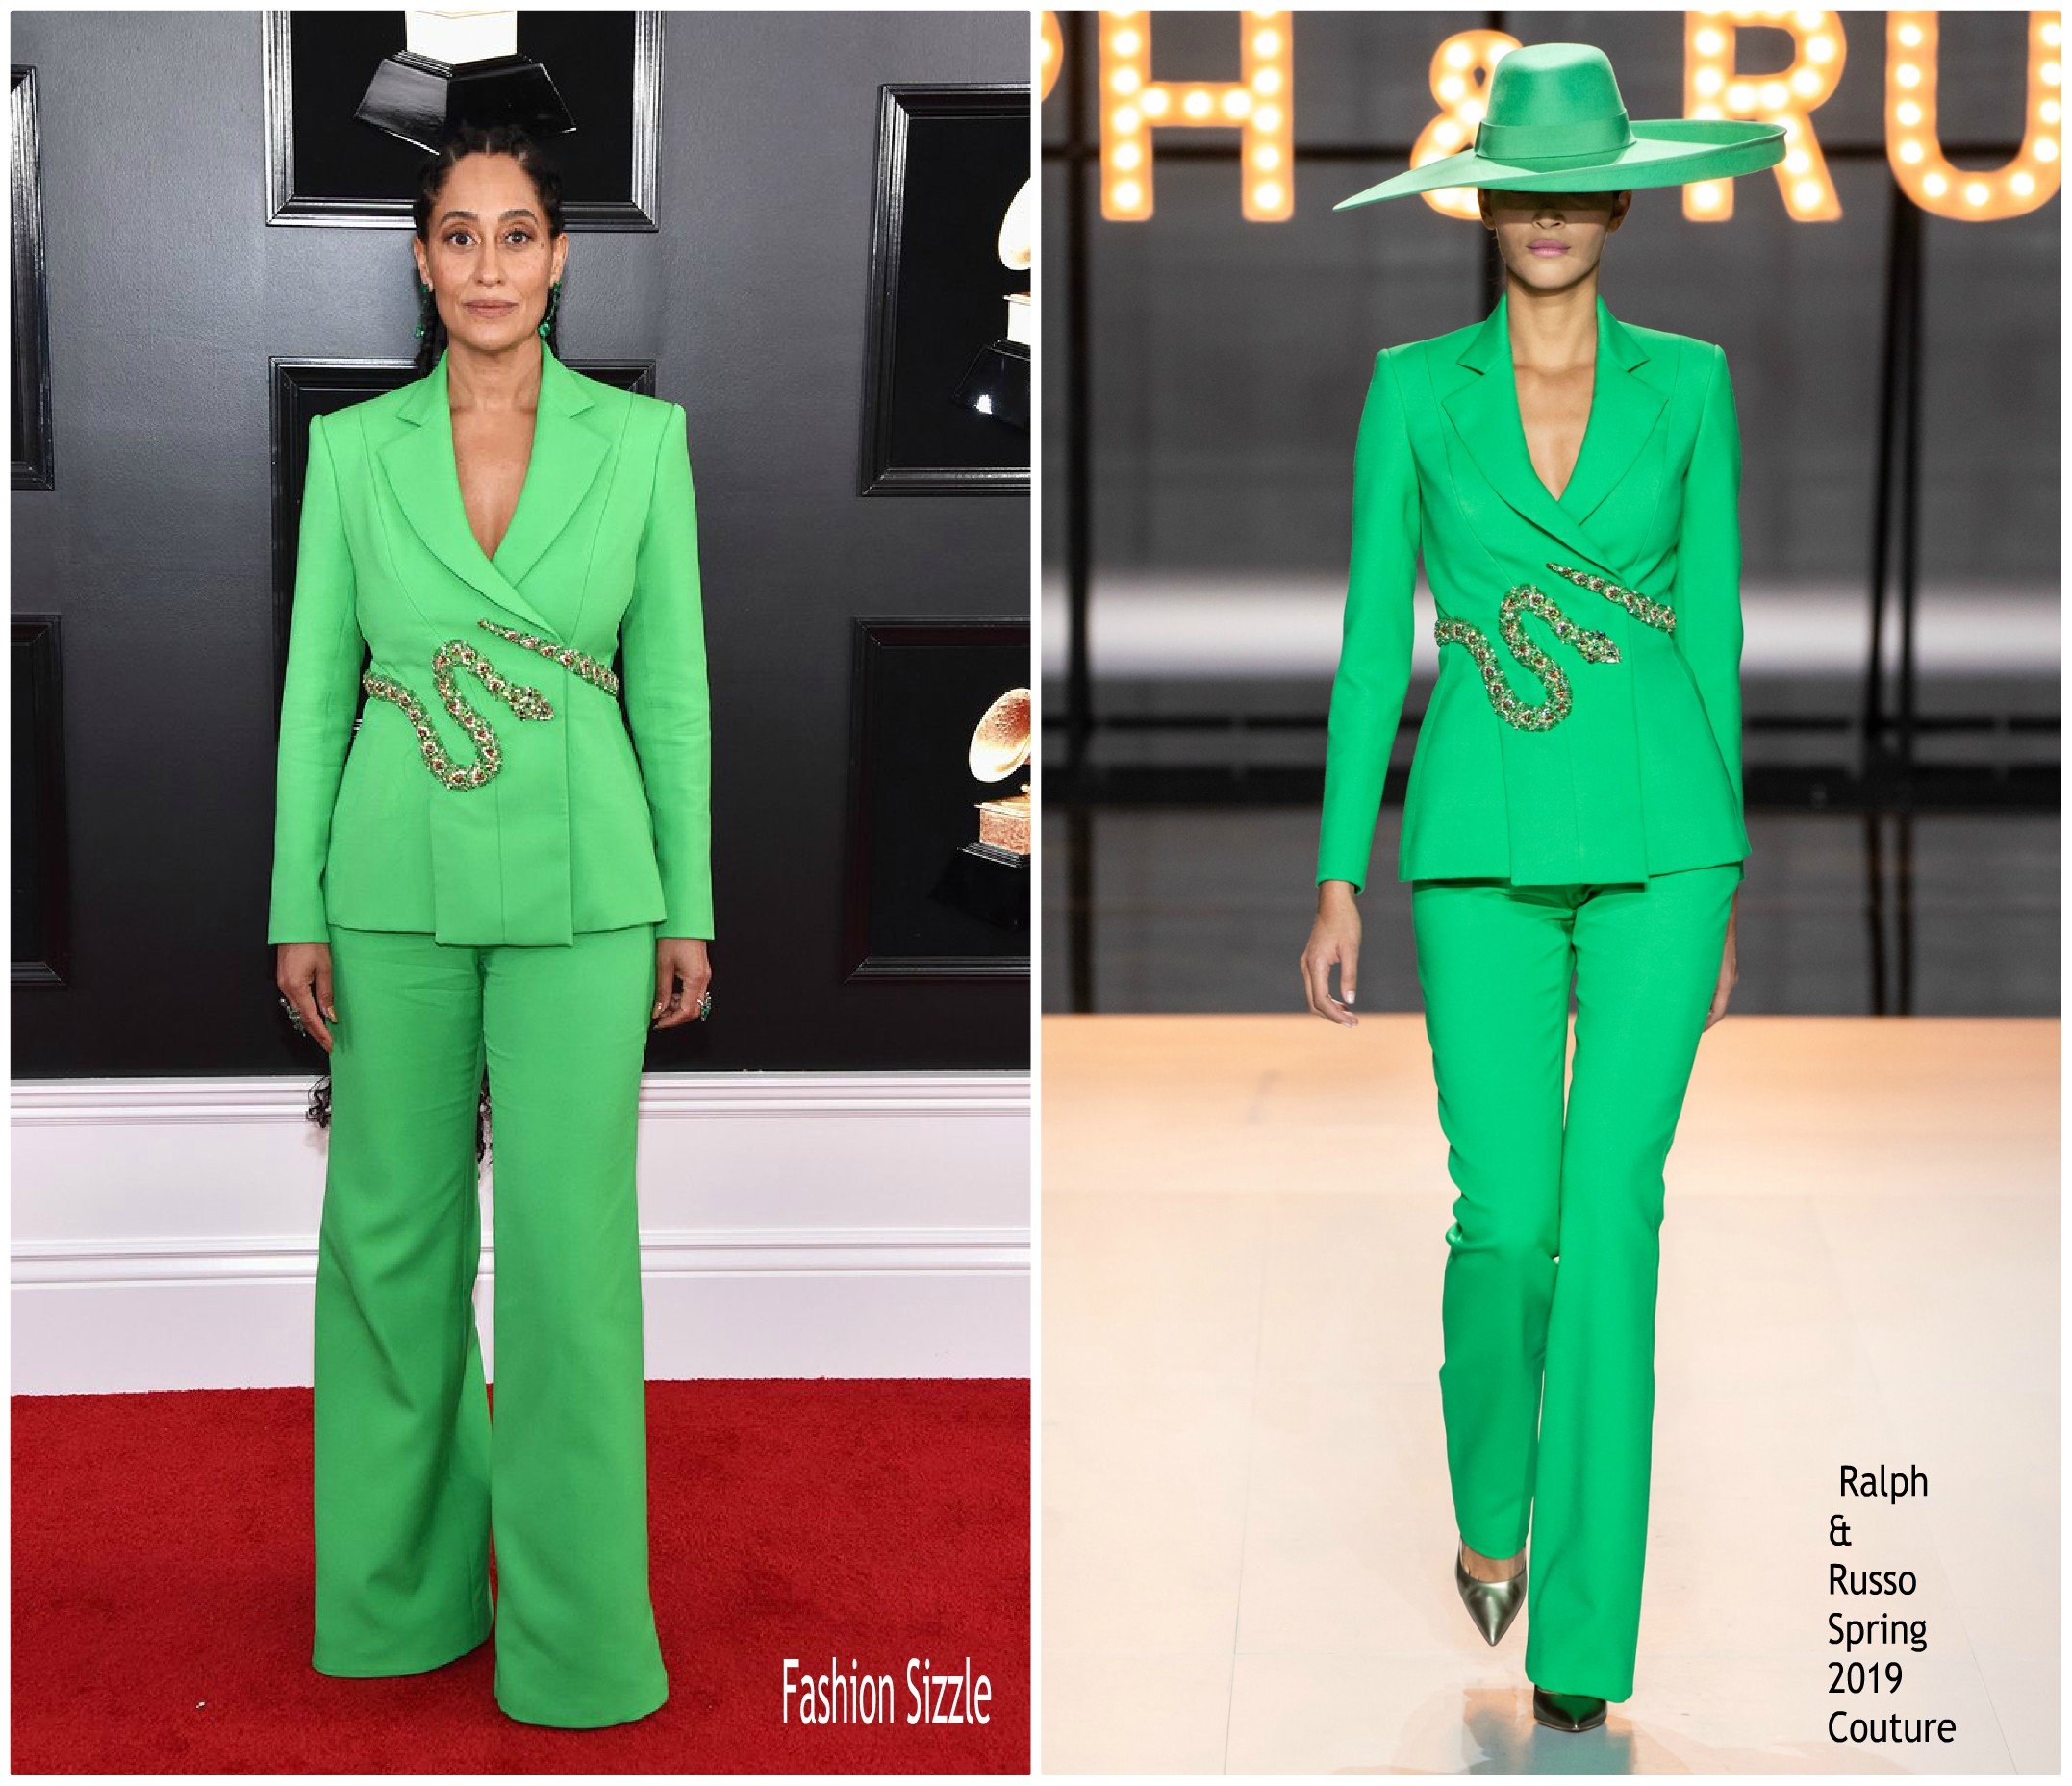 tracee-ellis-ross-in-ralph-russo-couture-2019-grammy-awards